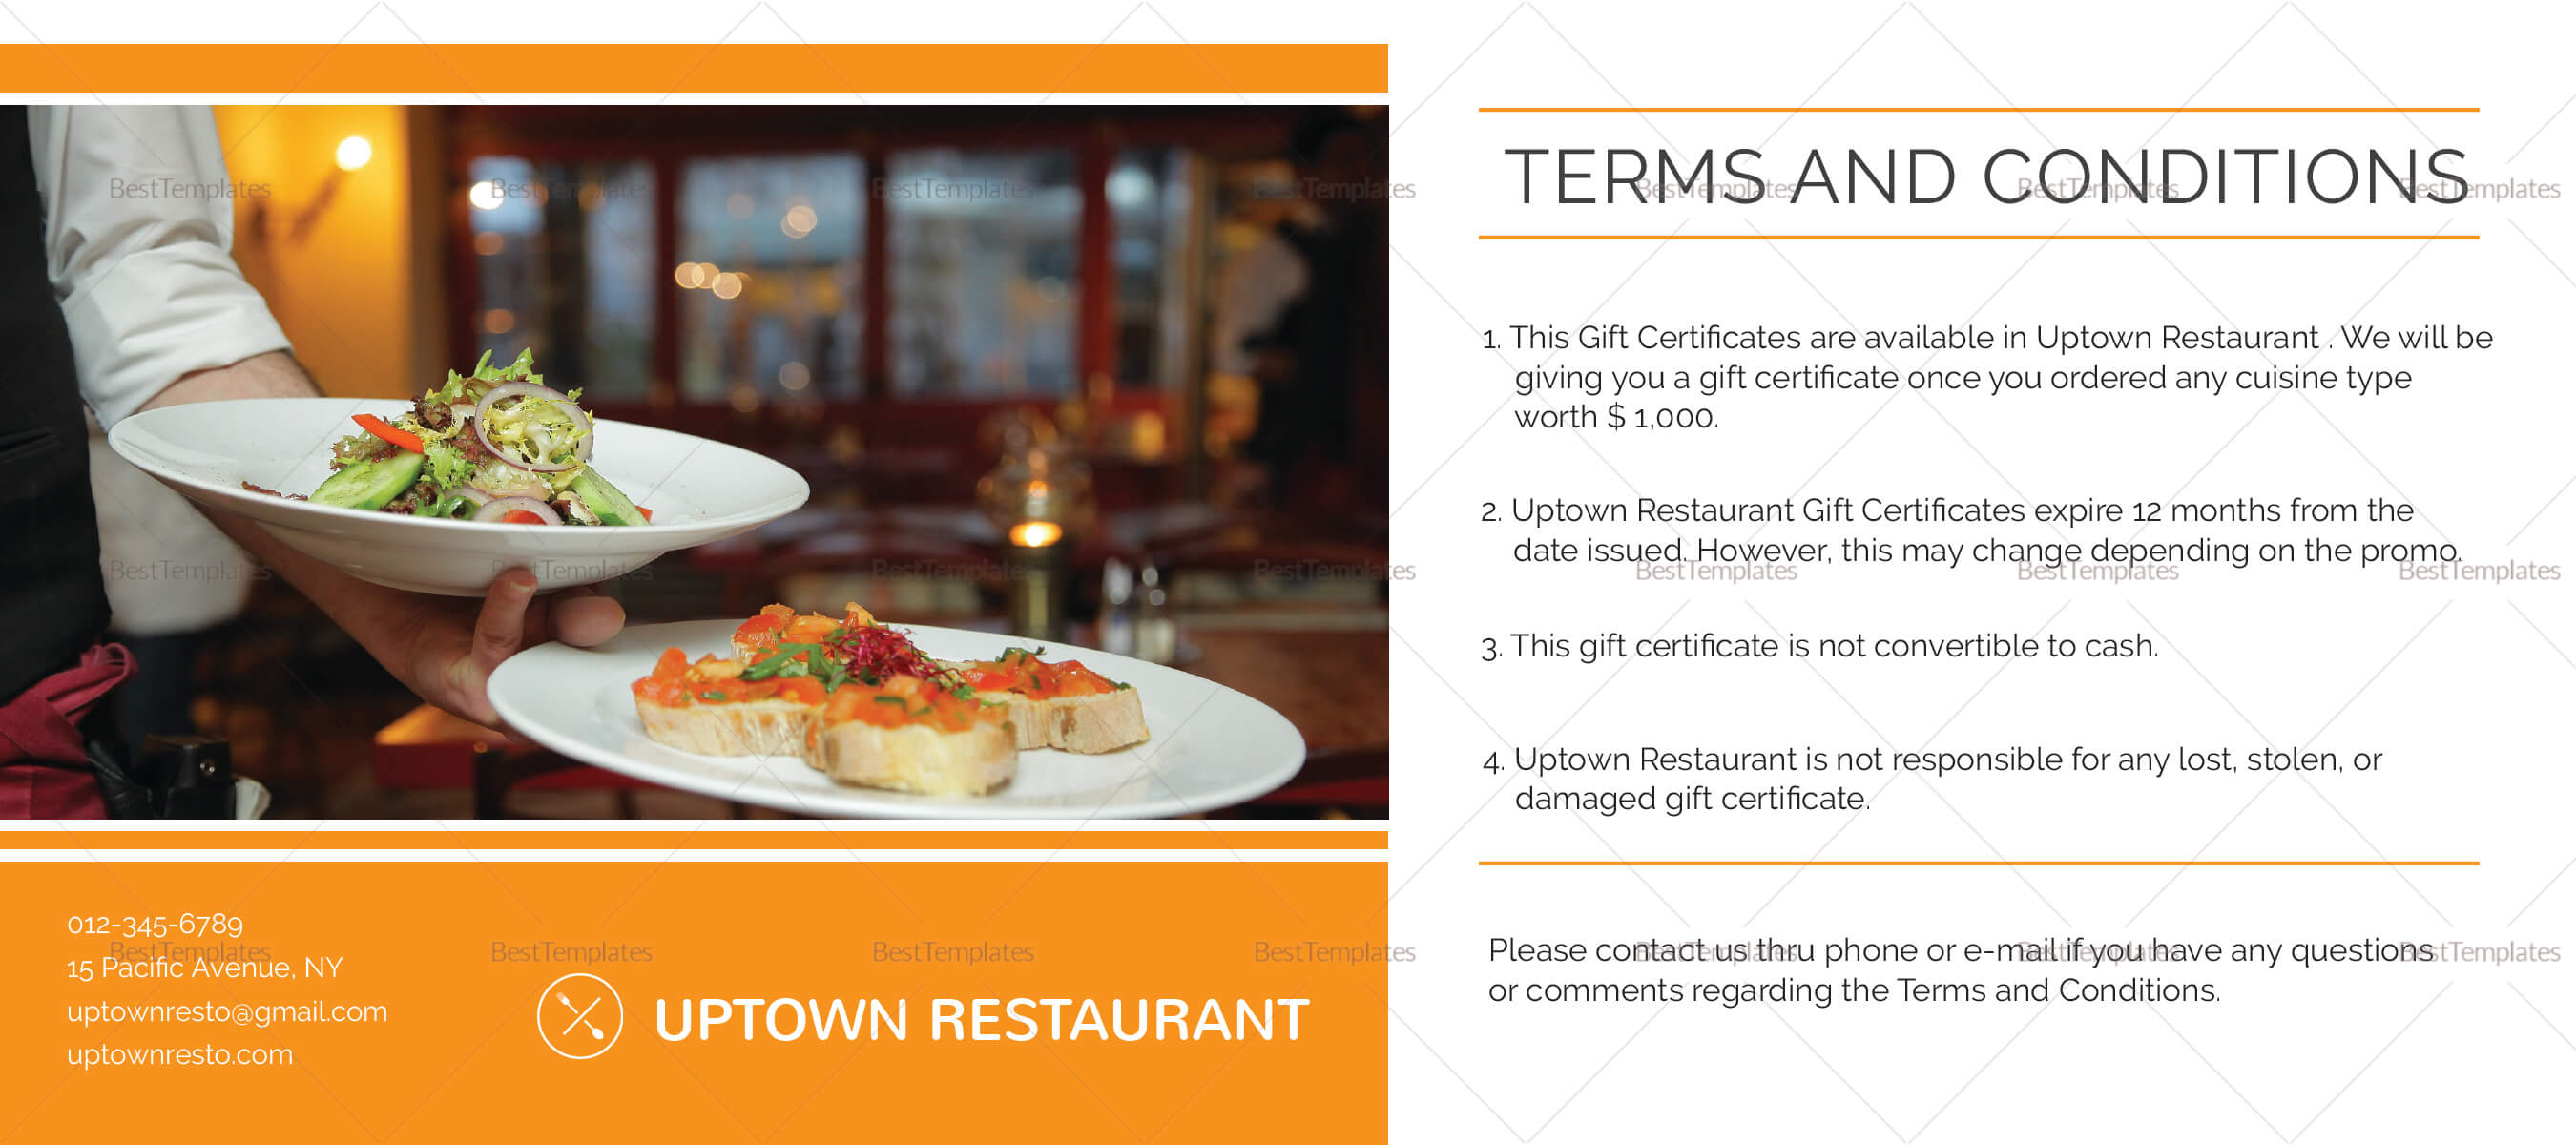 Restaurant Gift Certificate Template With Regard To Restaurant Gift Certificate Template